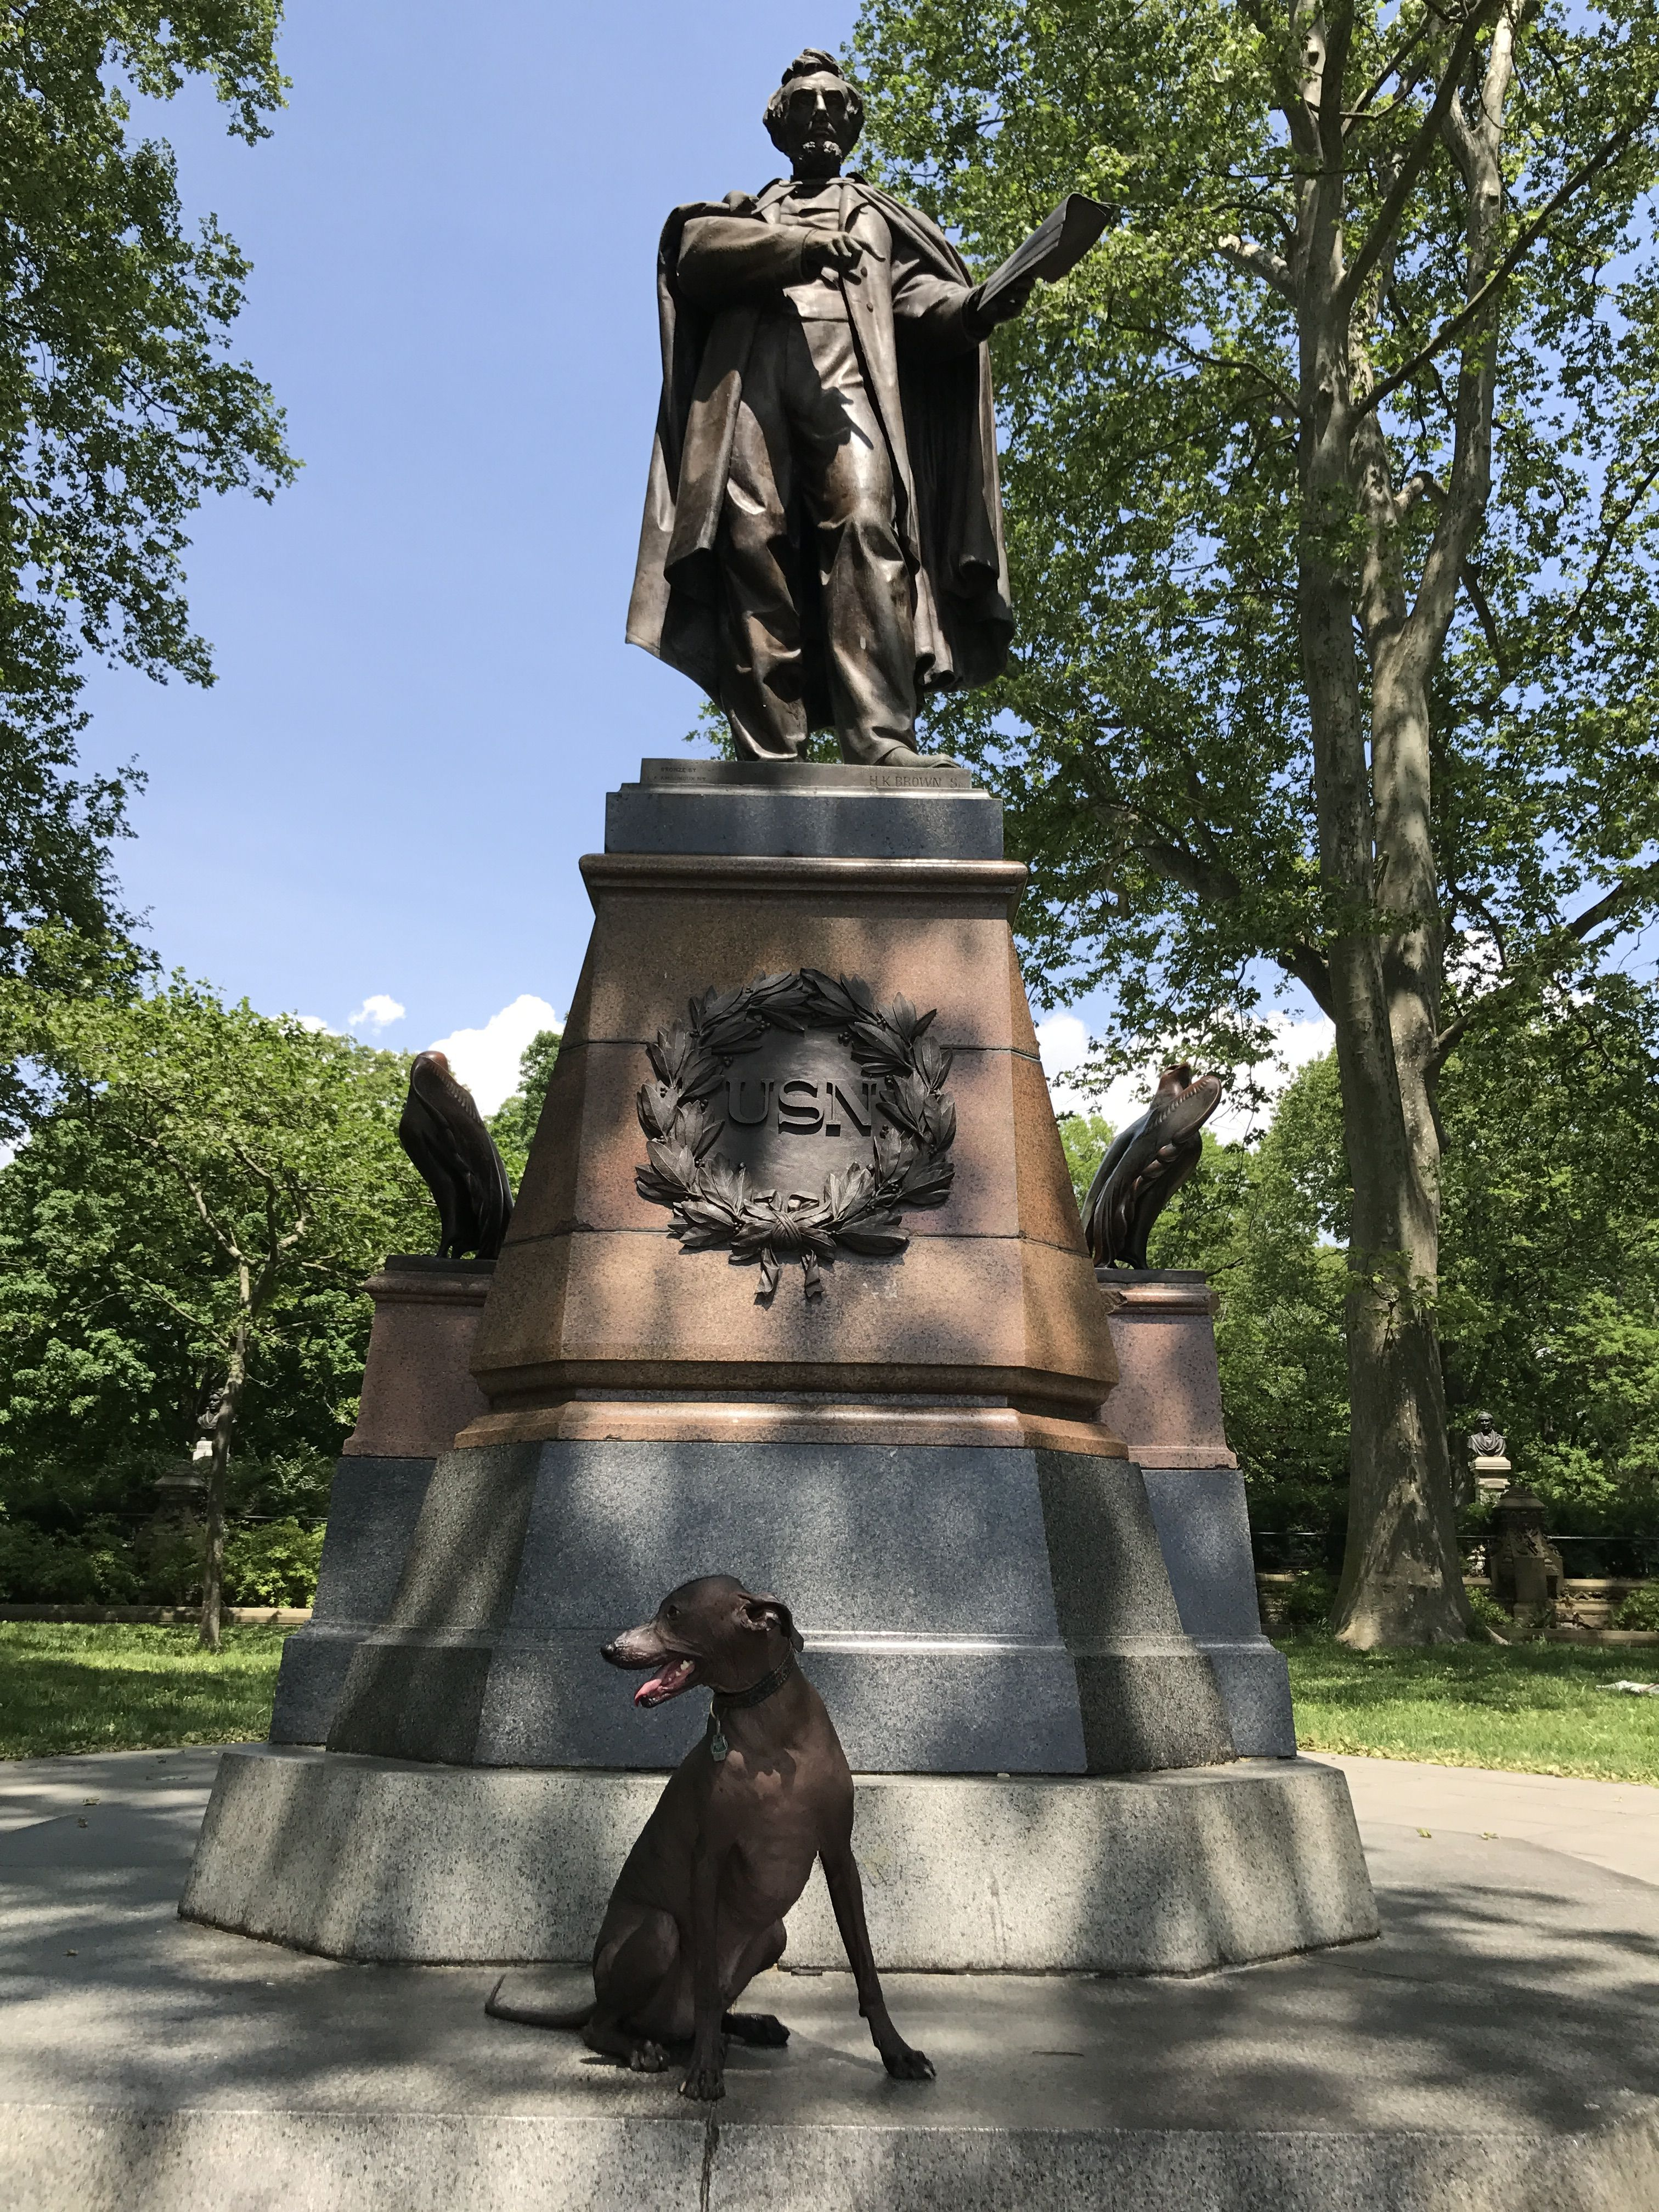 Statue of Abraham Lincoln, Prospect Park, Brooklyn